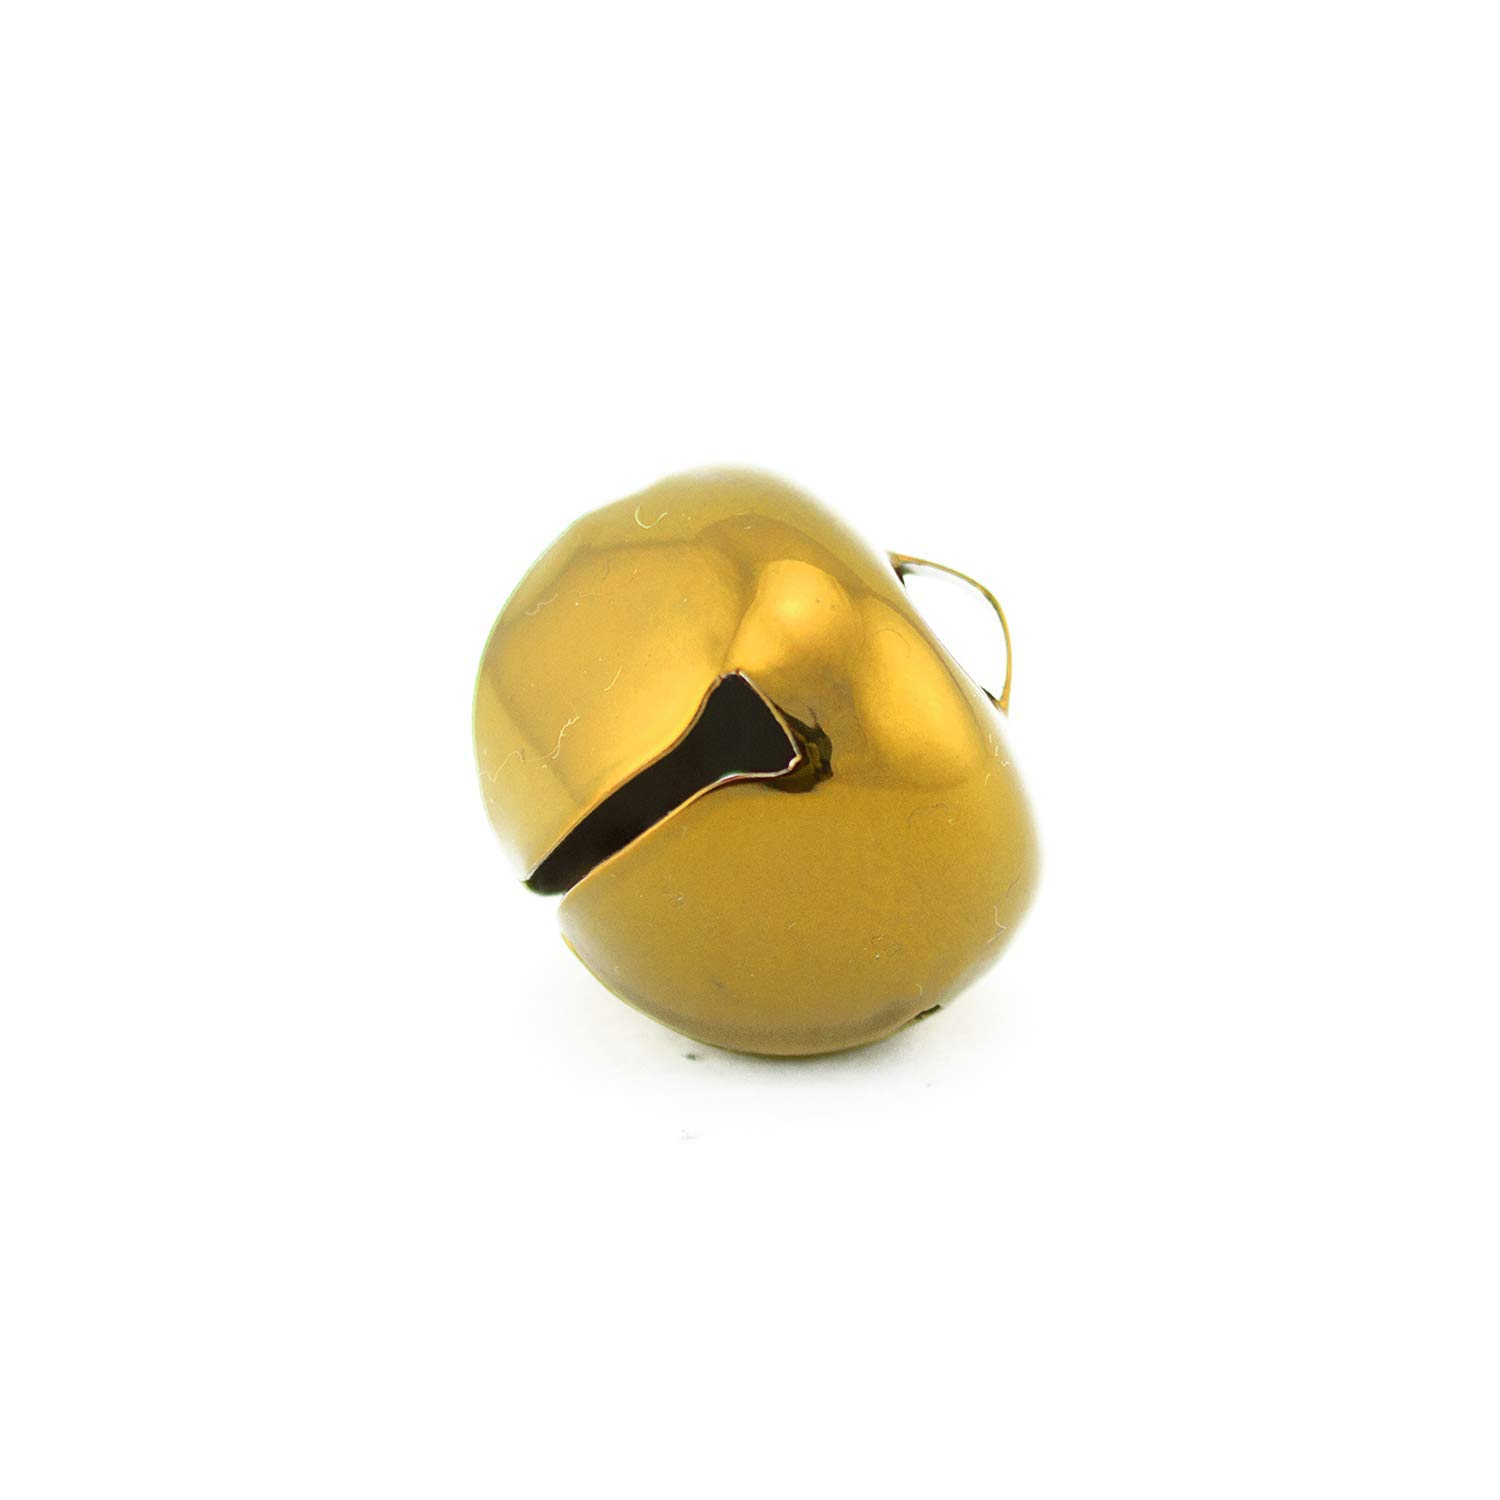 1.5 Inch 36mm Extra Large Giant Jumbo Craft Gold Jingle Bells 2 Pieces